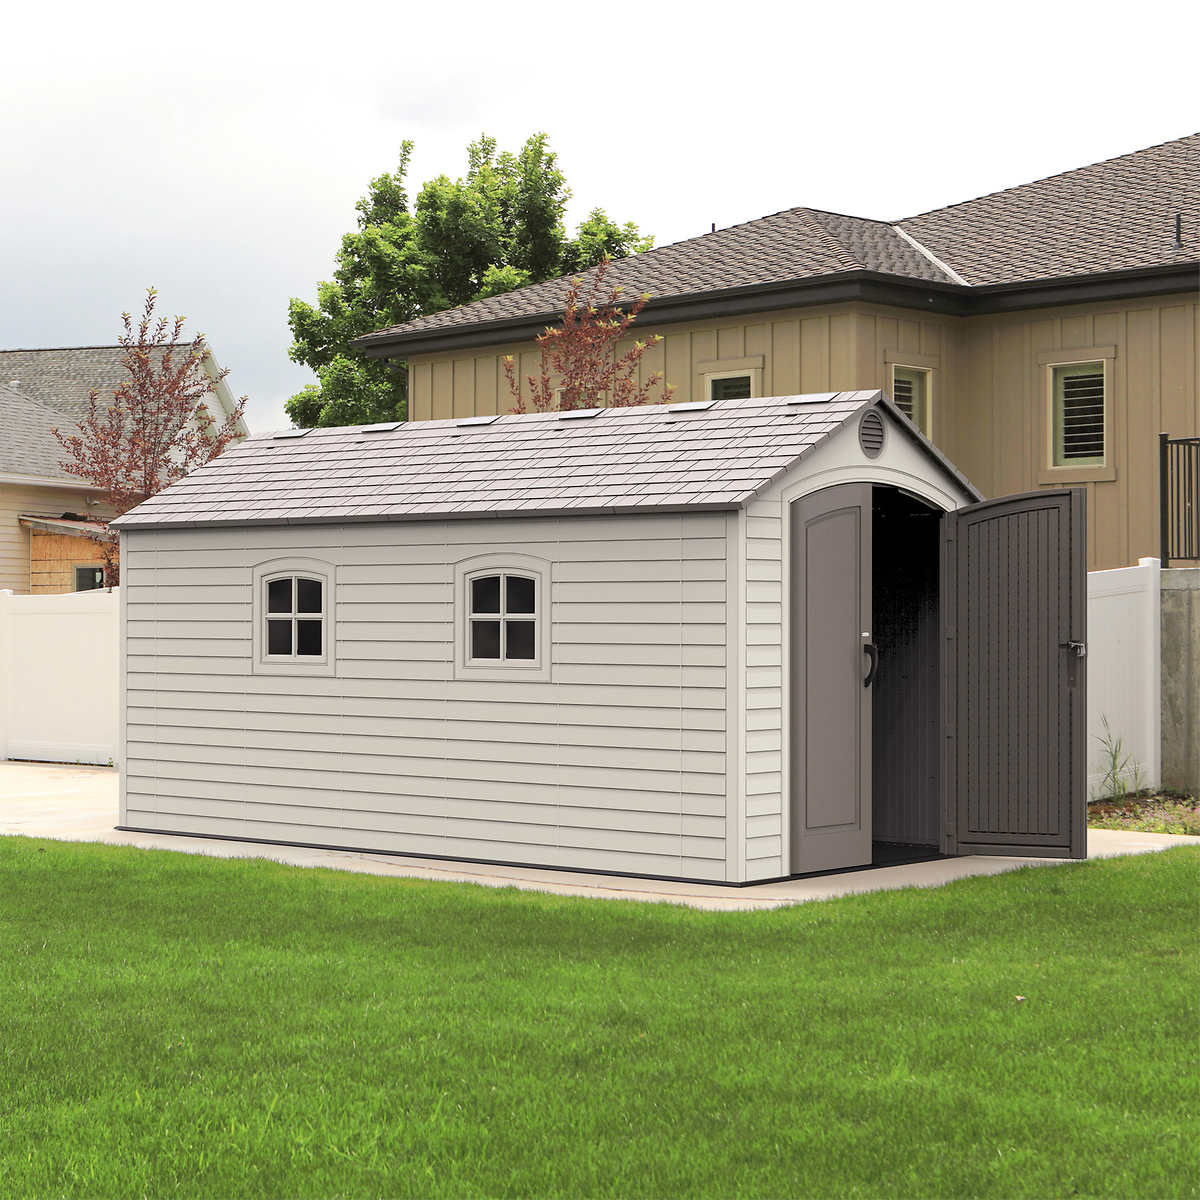 9x12 Garden Plan Shed Plans Rubbermaid Storage Sheds - Lifetime brighton 8 x 15 storage shed